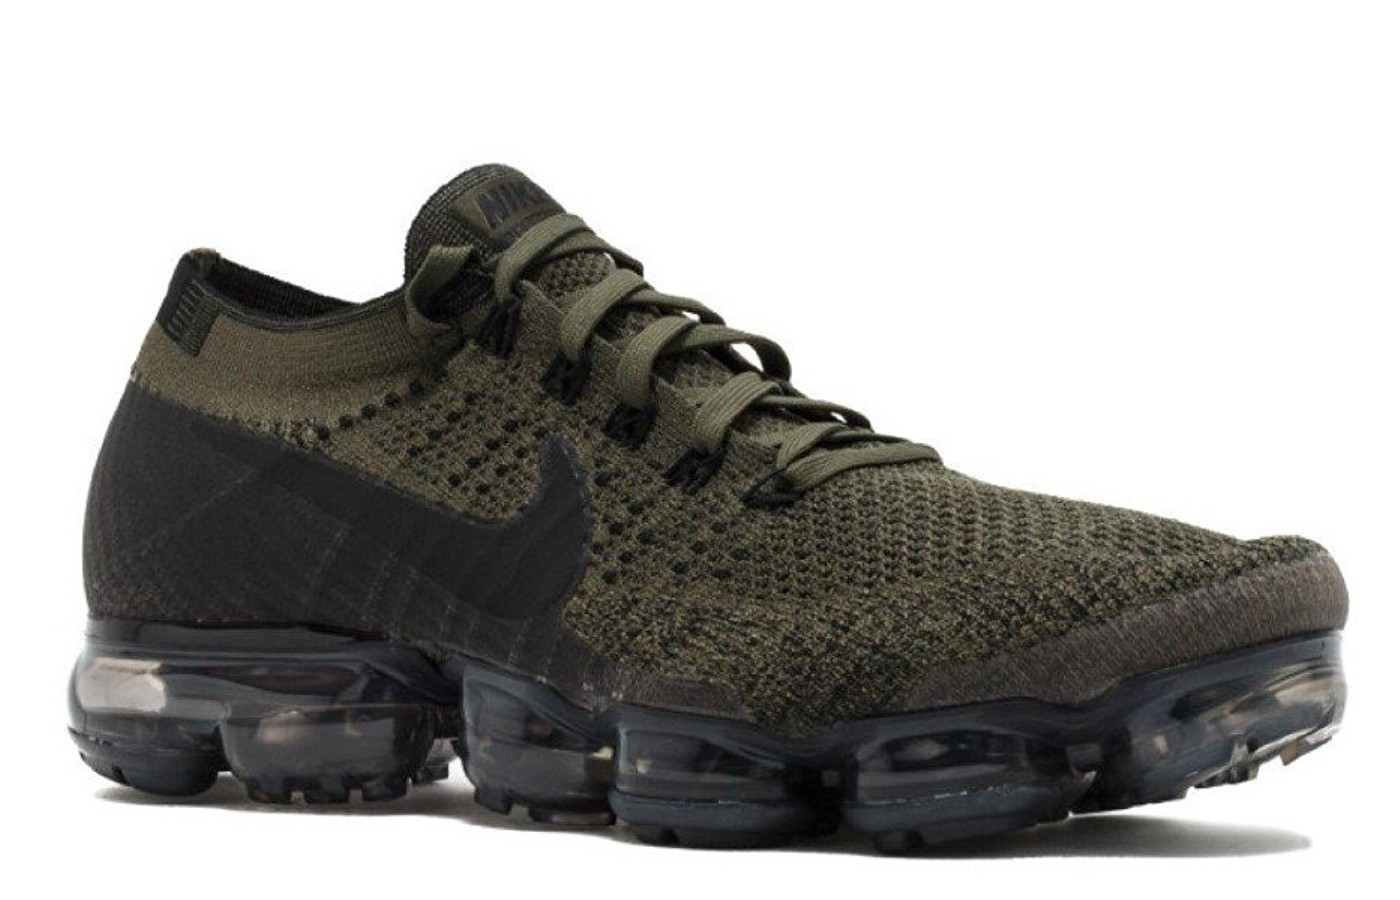 40c741609f93 Nike Air Vapormax Flyknit Reviewed for Performance in 2019